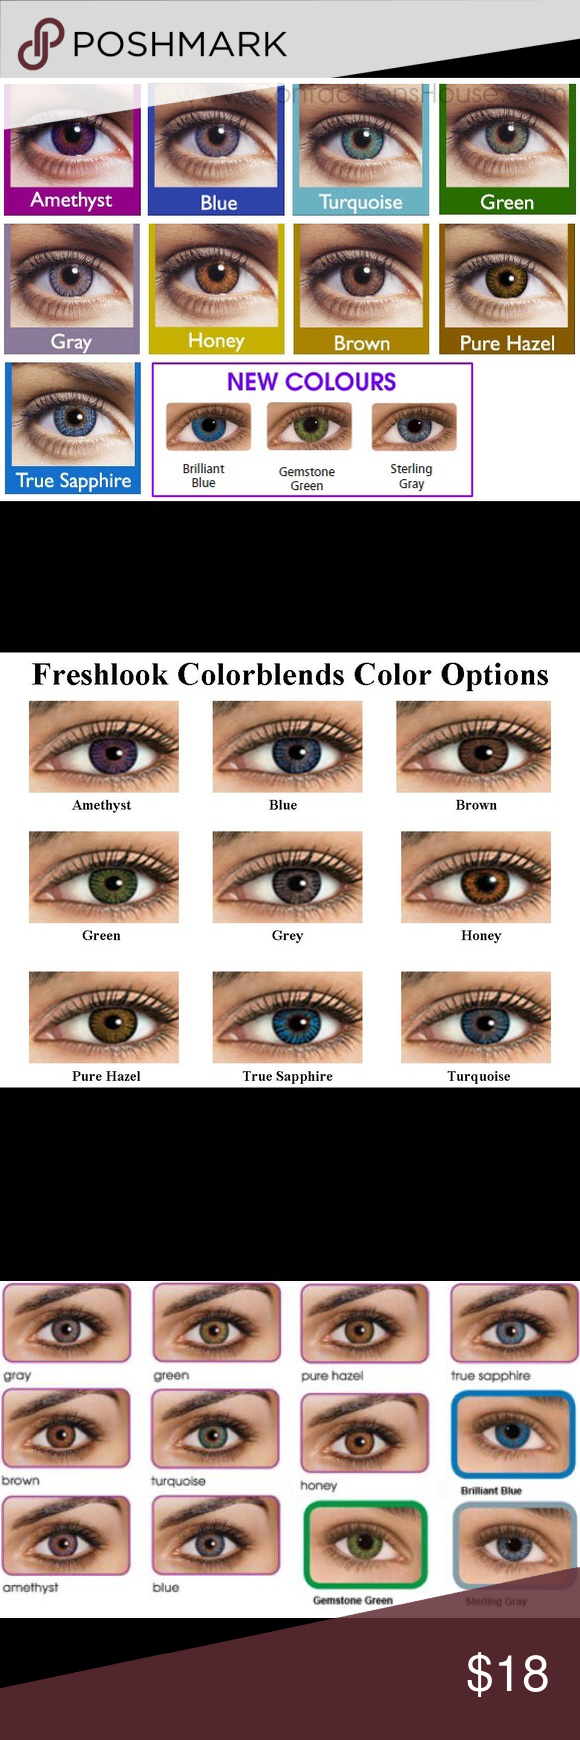 Bright Eye Contact Lense Colored Contacts Contact Lenses Colored Contact Lenses For Brown Eyes